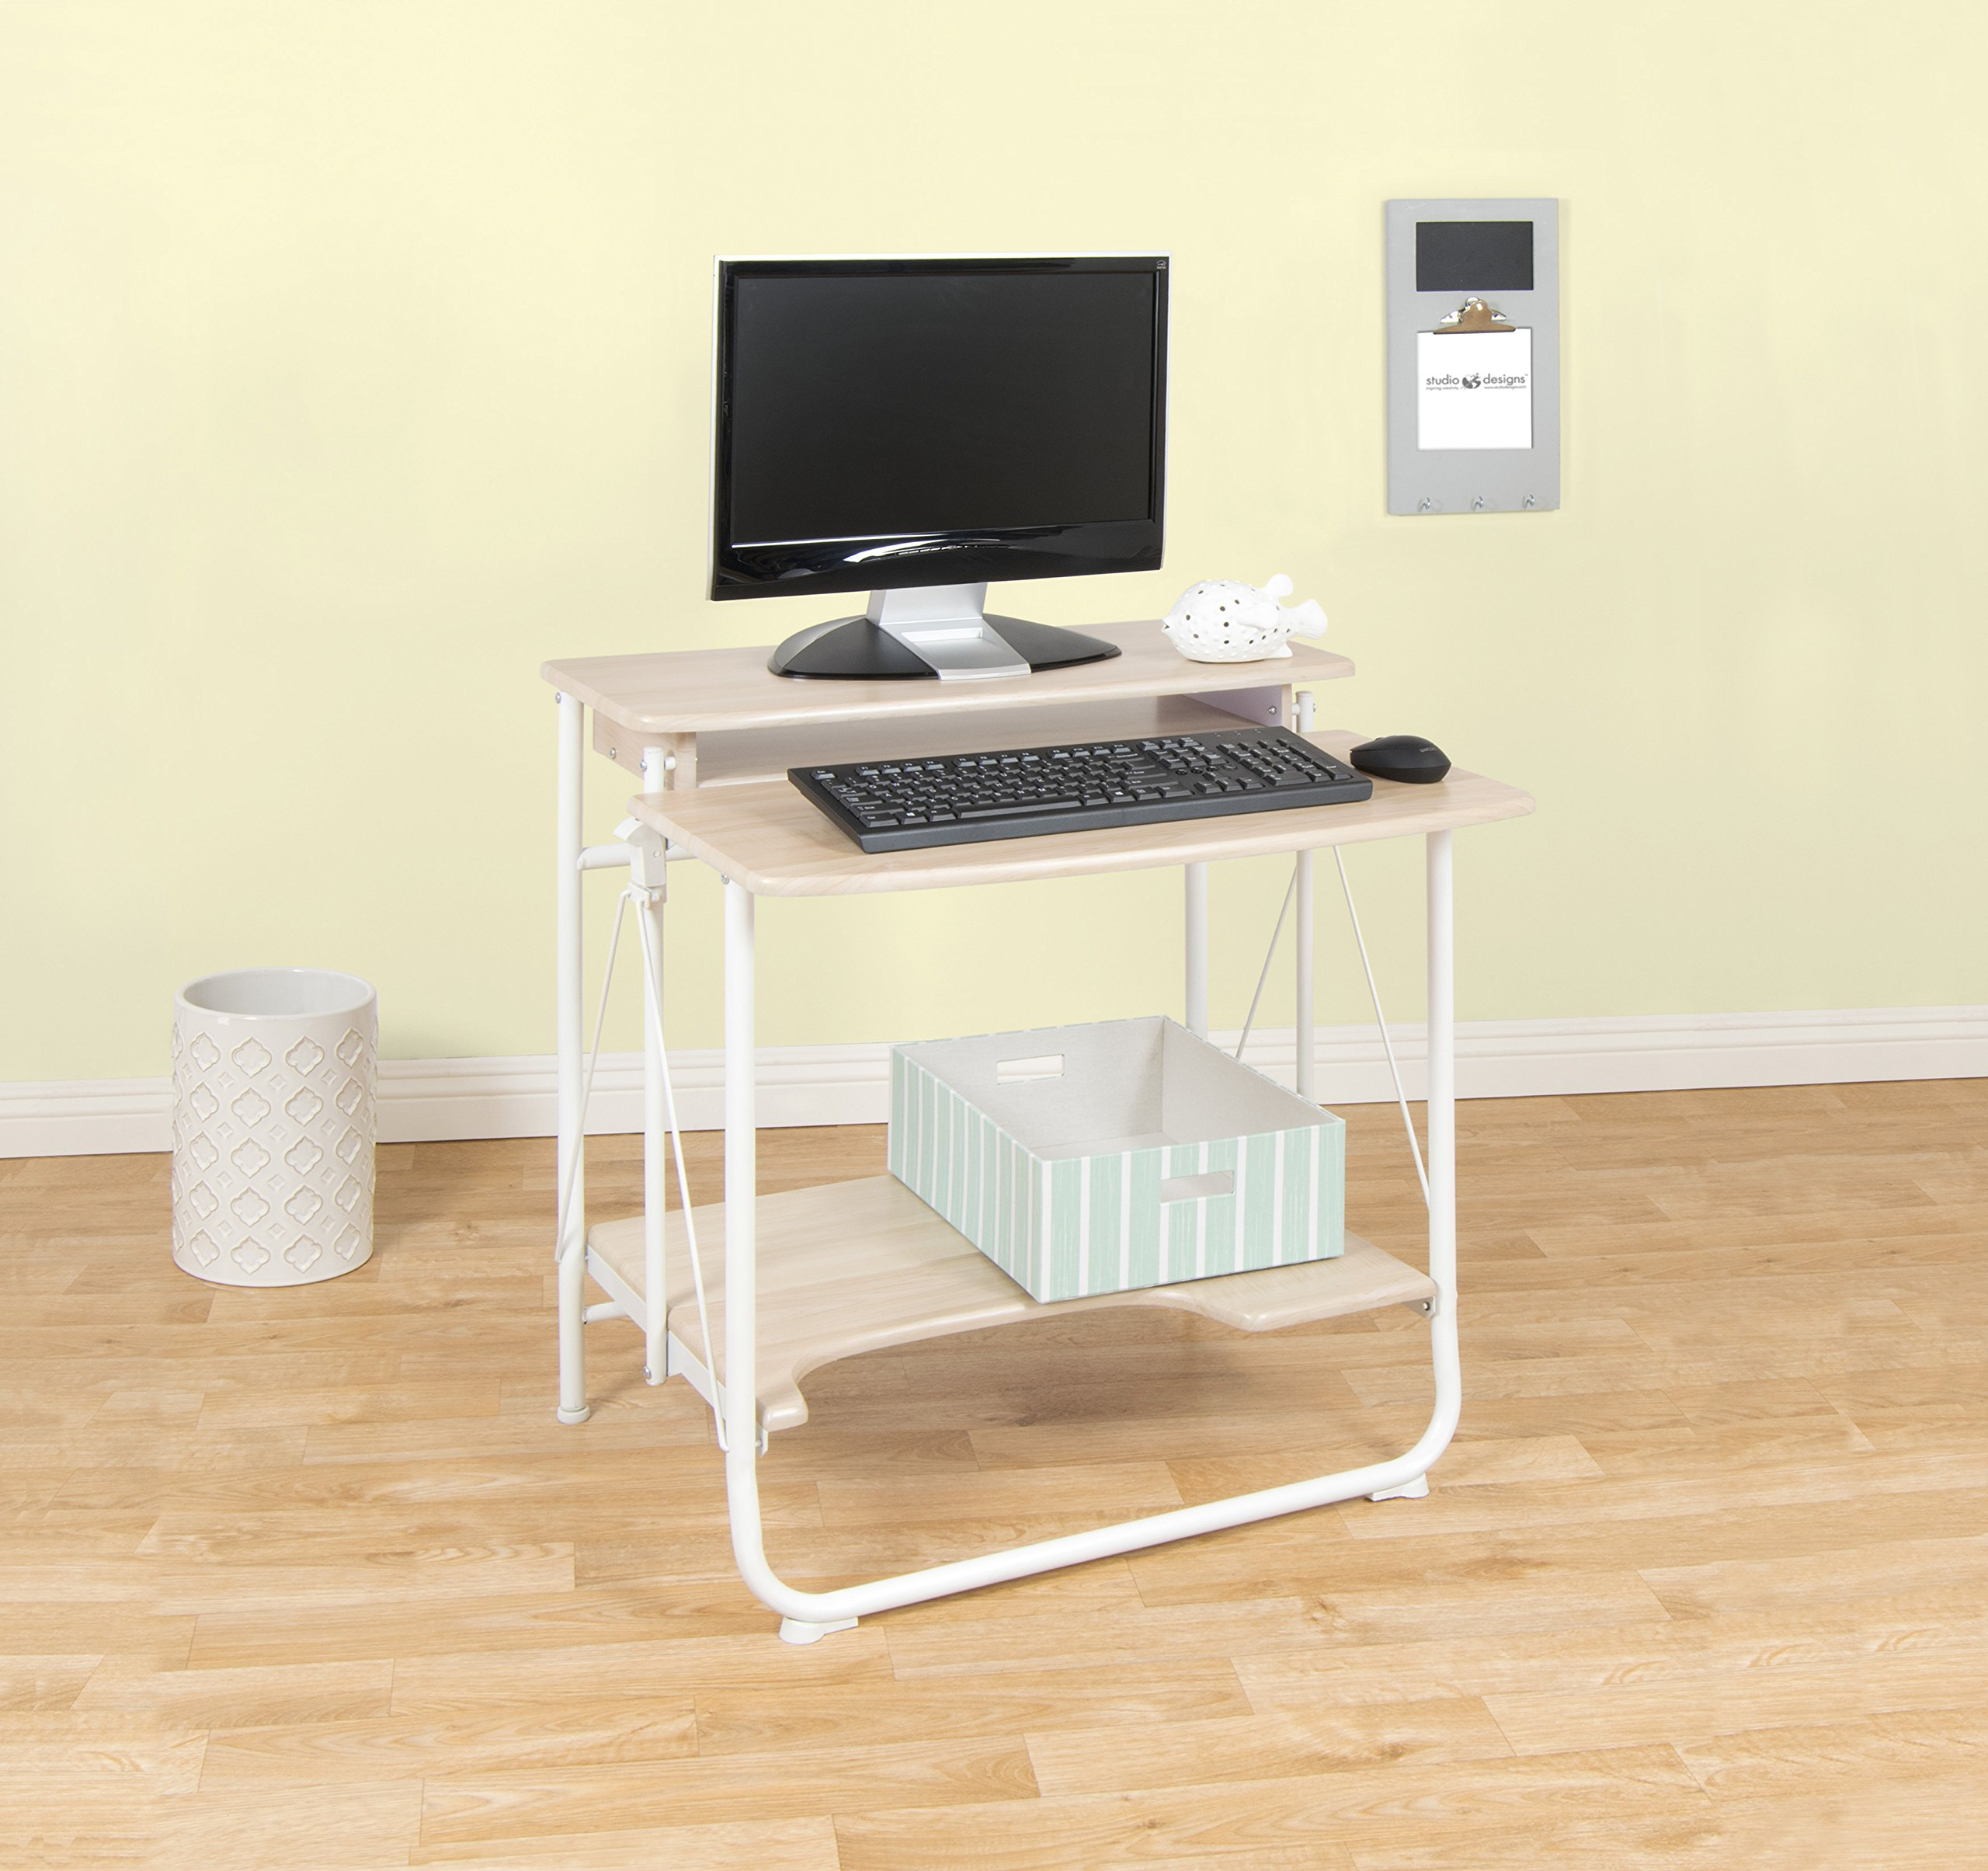 Calico Designs 51236.0 Stow Away Folding Desk, White/Maple